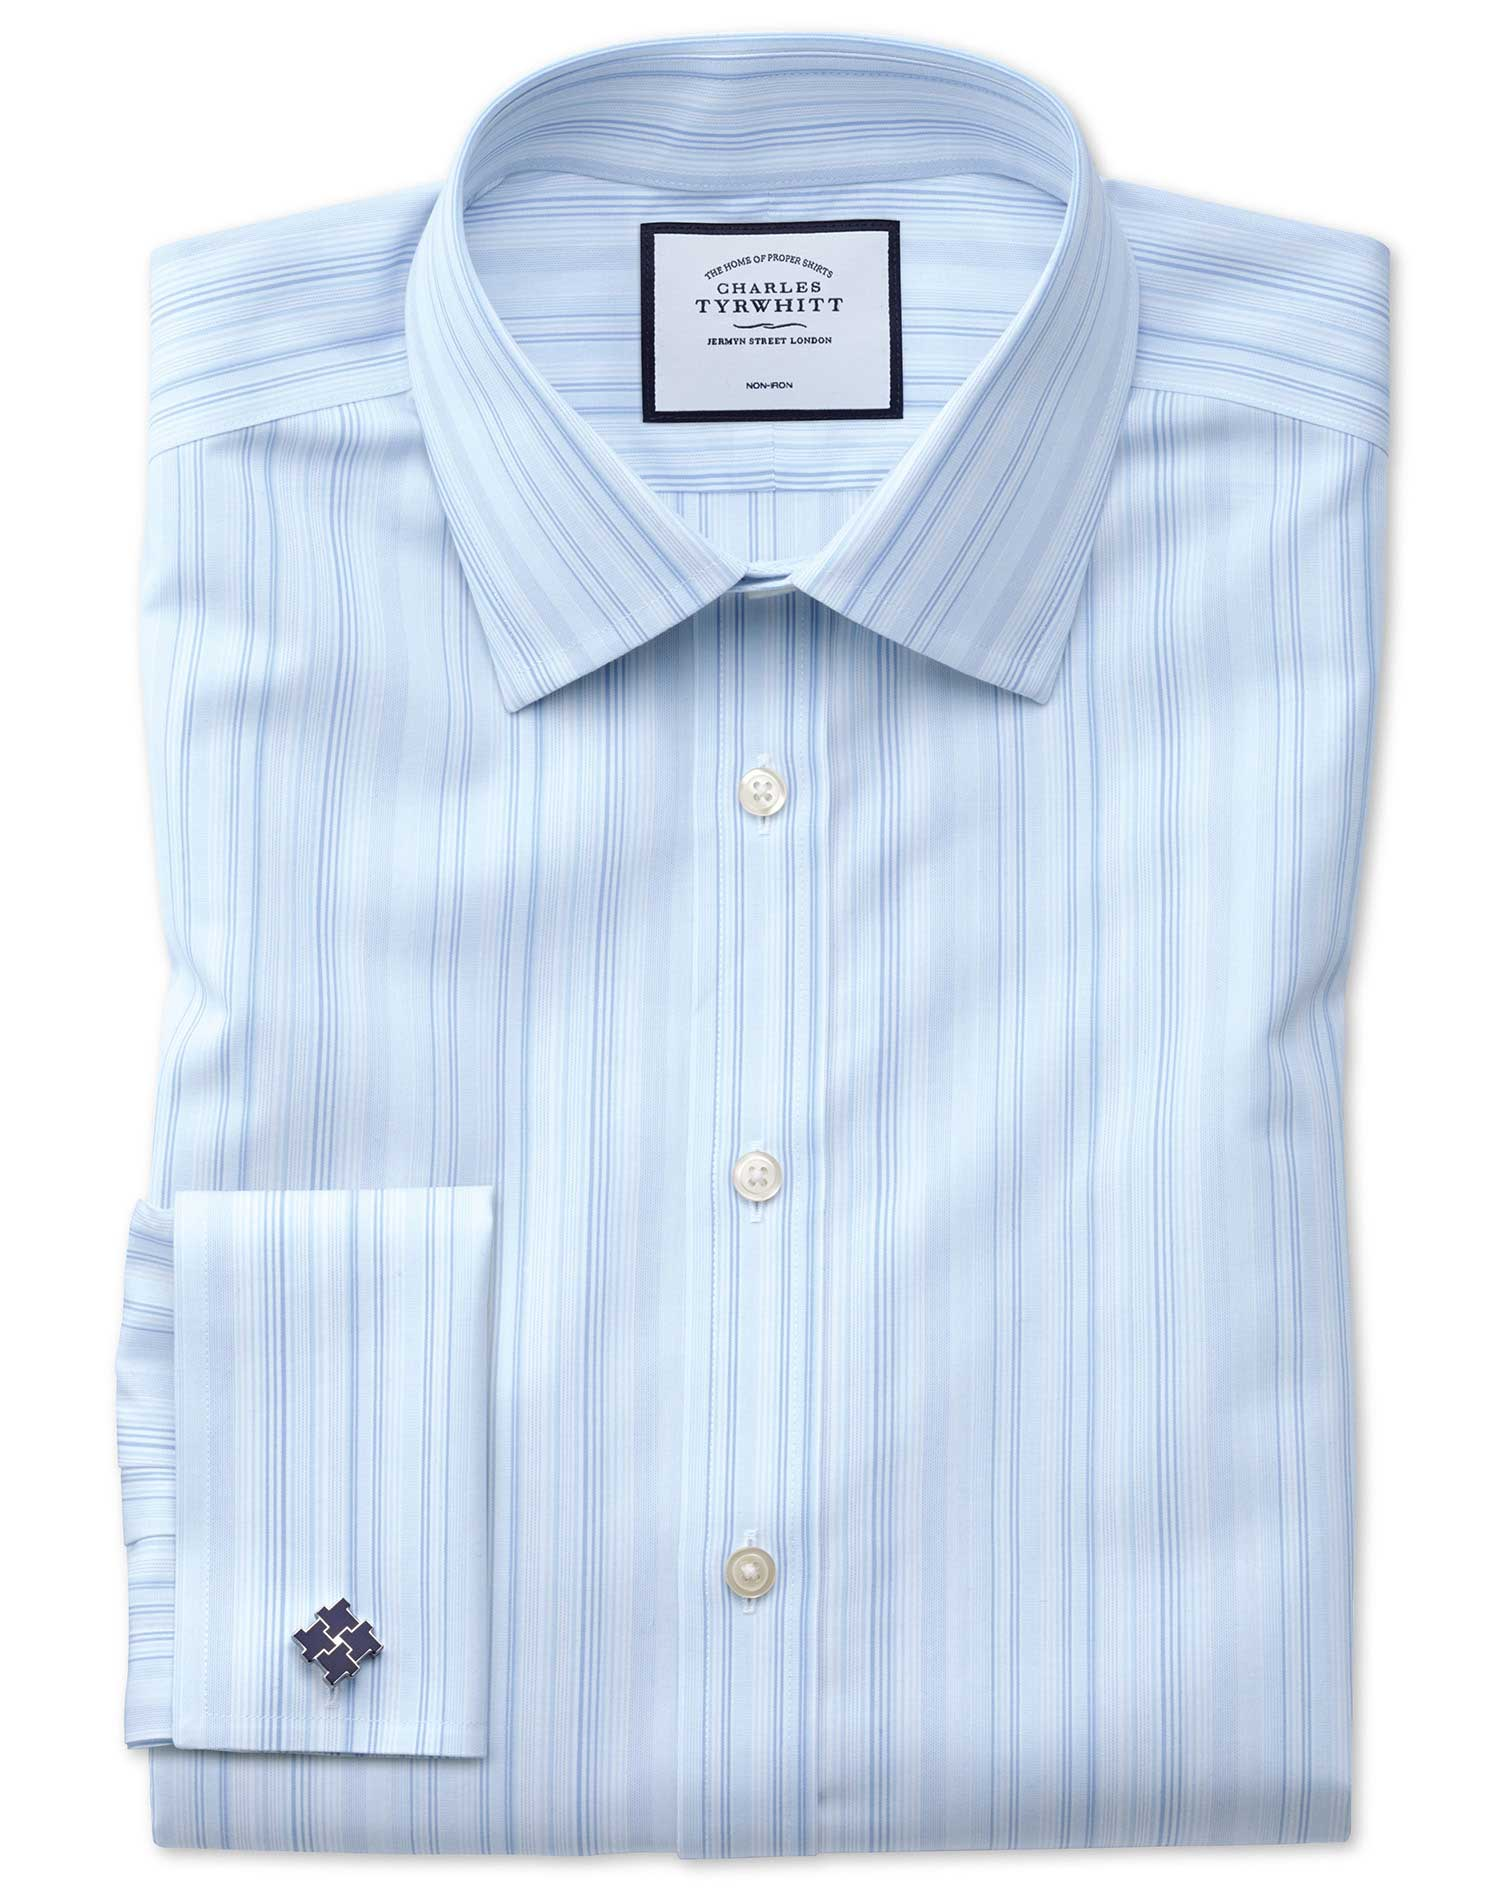 Slim Fit Non-Iron Blue Multi Stripe Cotton Formal Shirt Double Cuff Size 17/34 by Charles Tyrwhitt